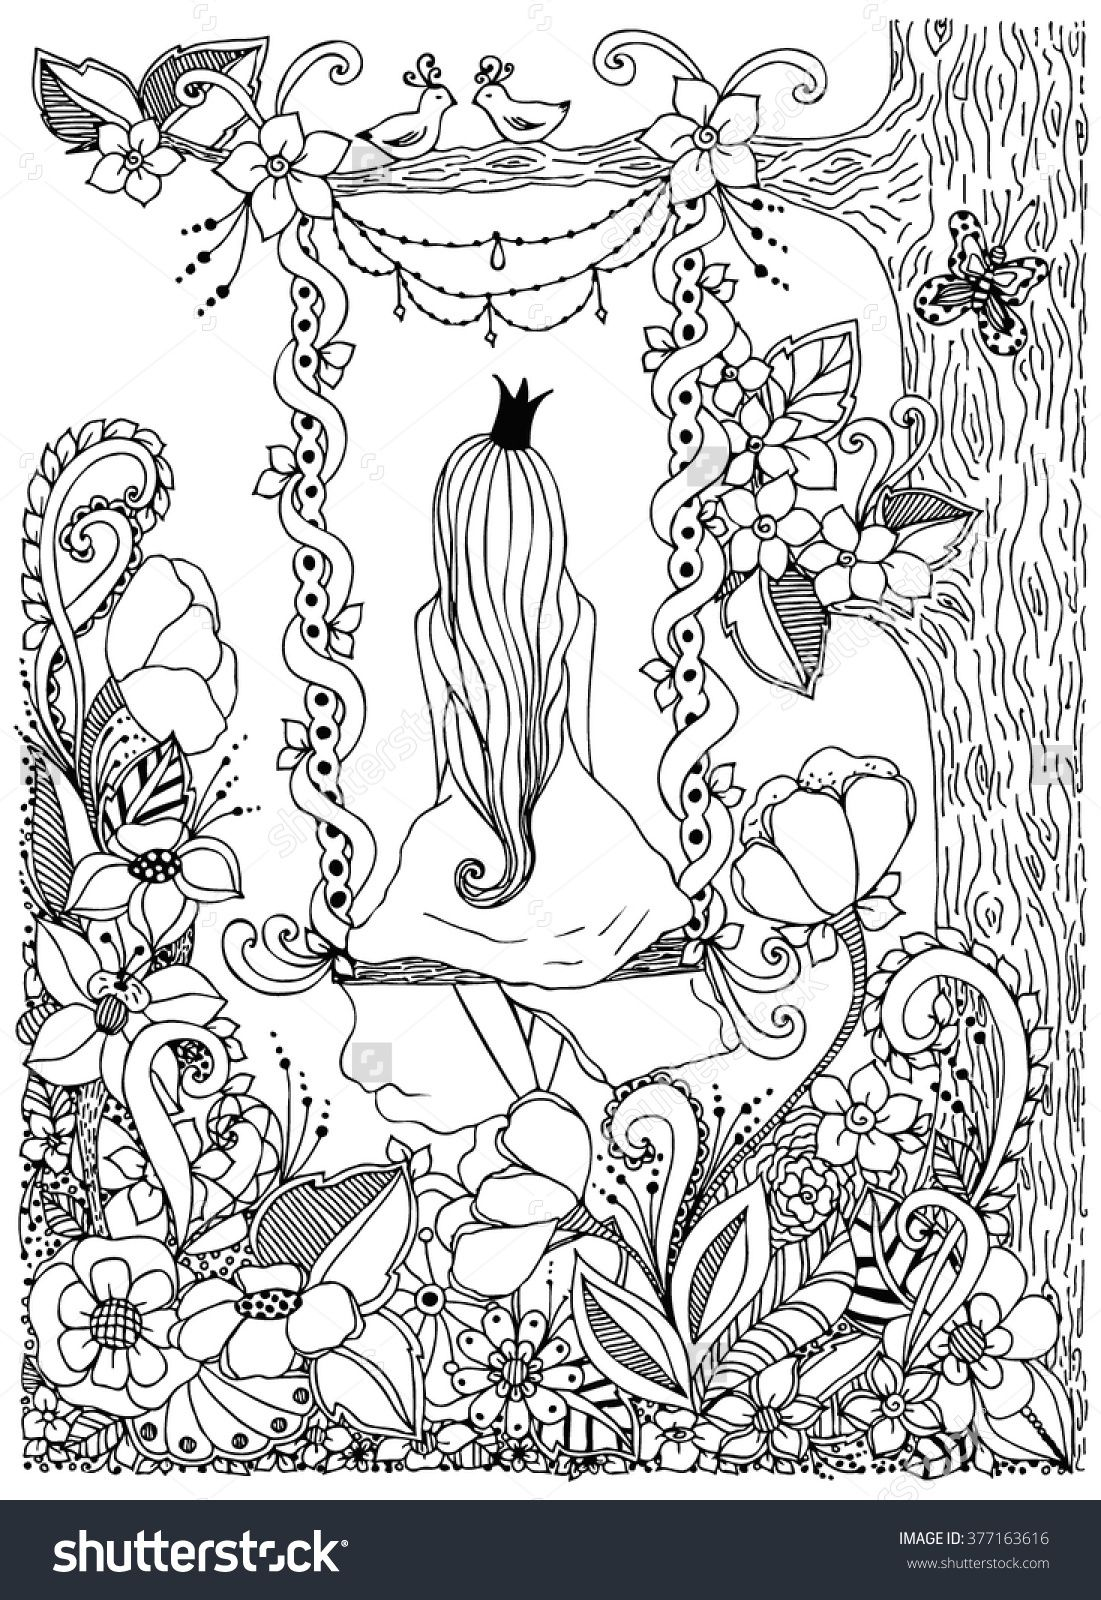 Princess house coloring pages - Princess Zentangle Riding On A Swing Garden Flowers Birds In A Tree Adult Coloring Pagesadult